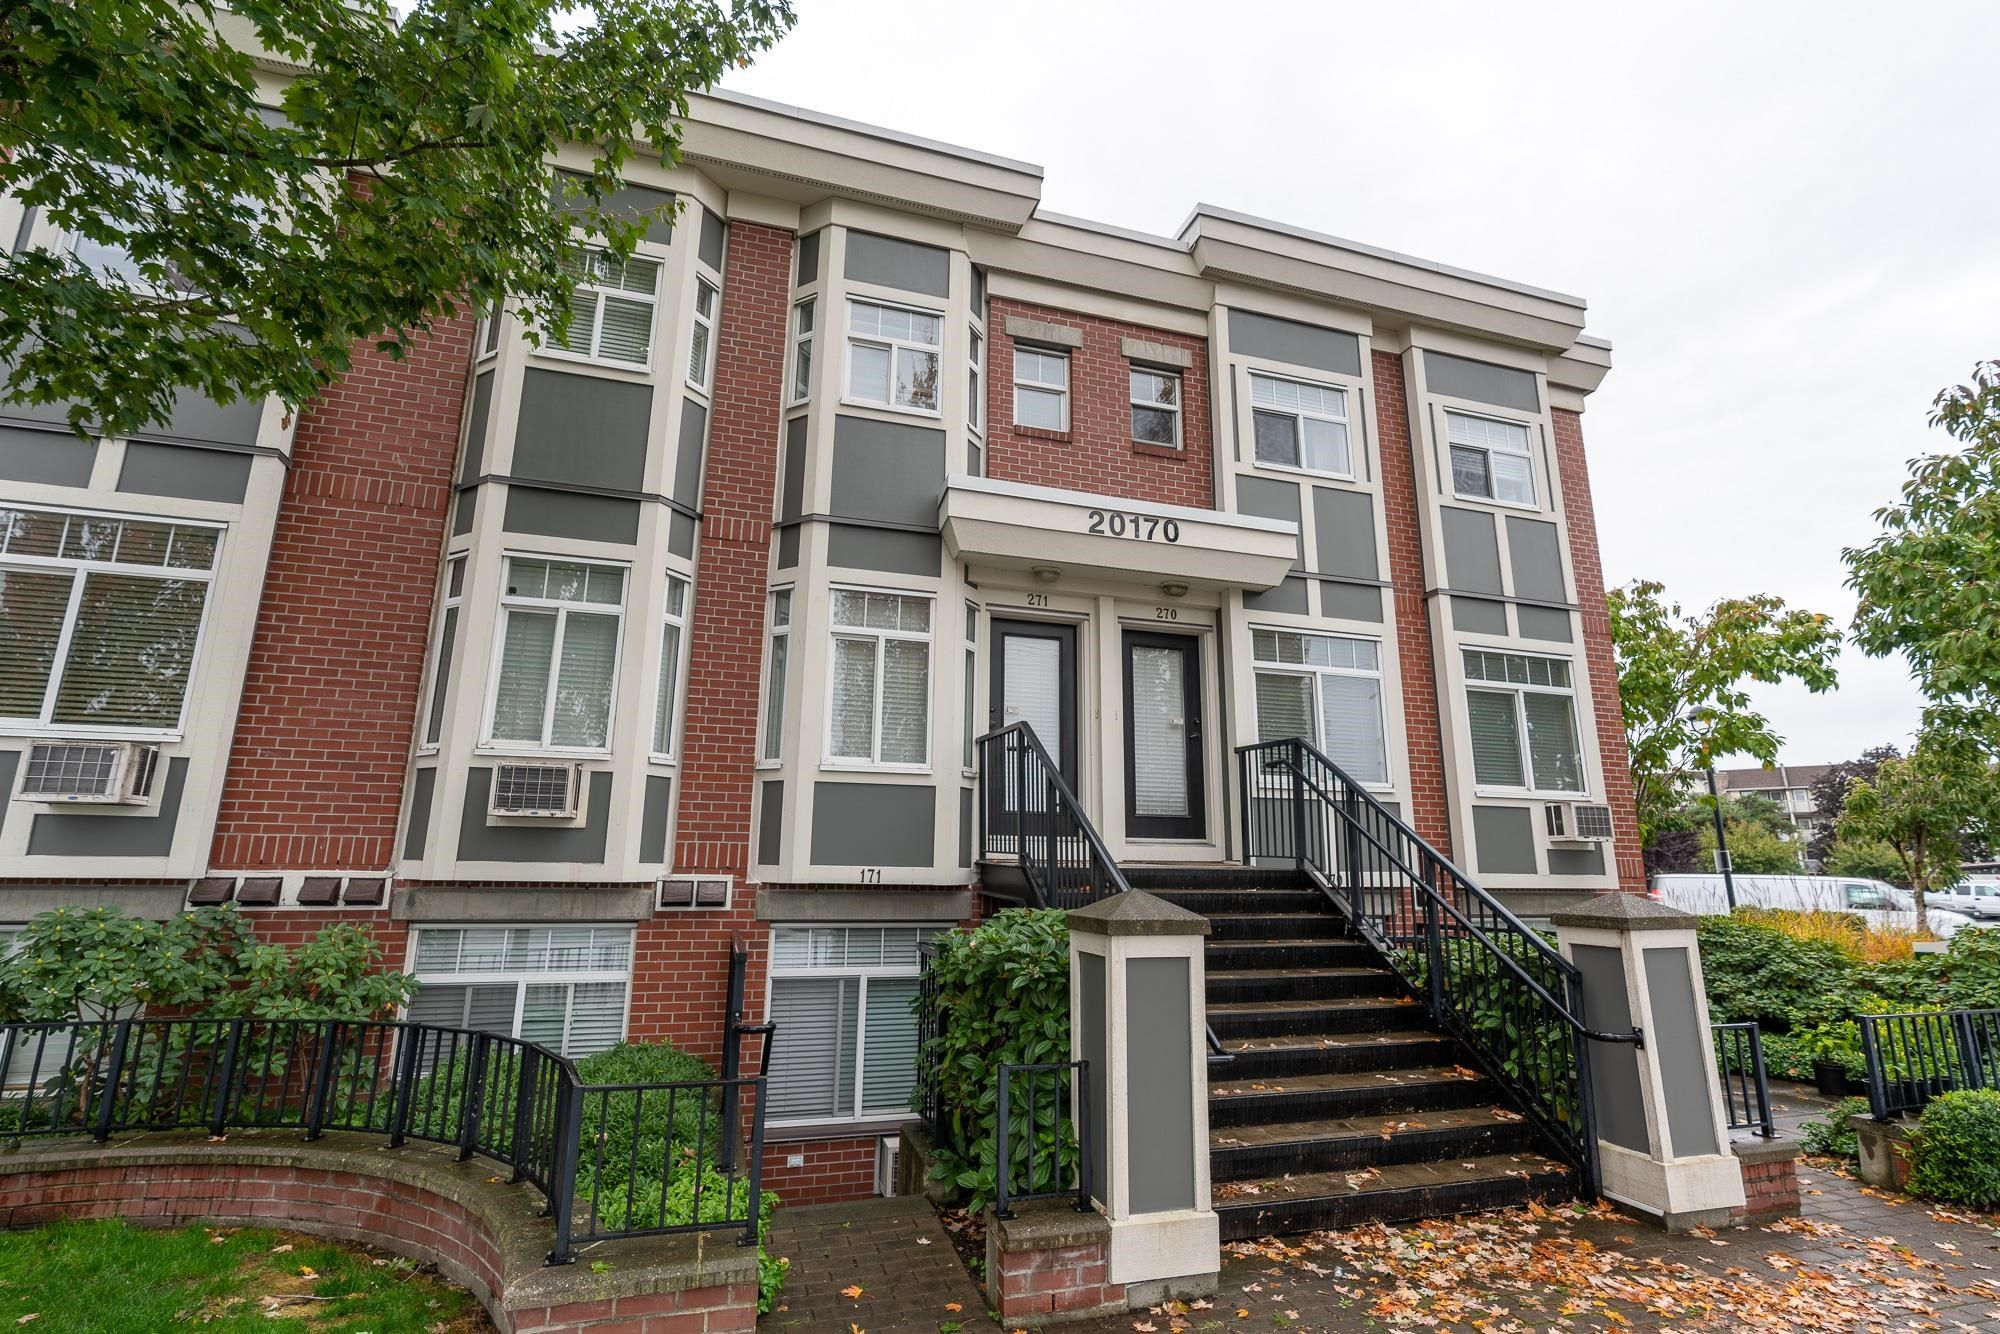 """Main Photo: 171 20170 FRASER Highway in Langley: Langley City Condo for sale in """"Paddington Station"""" : MLS®# R2623481"""